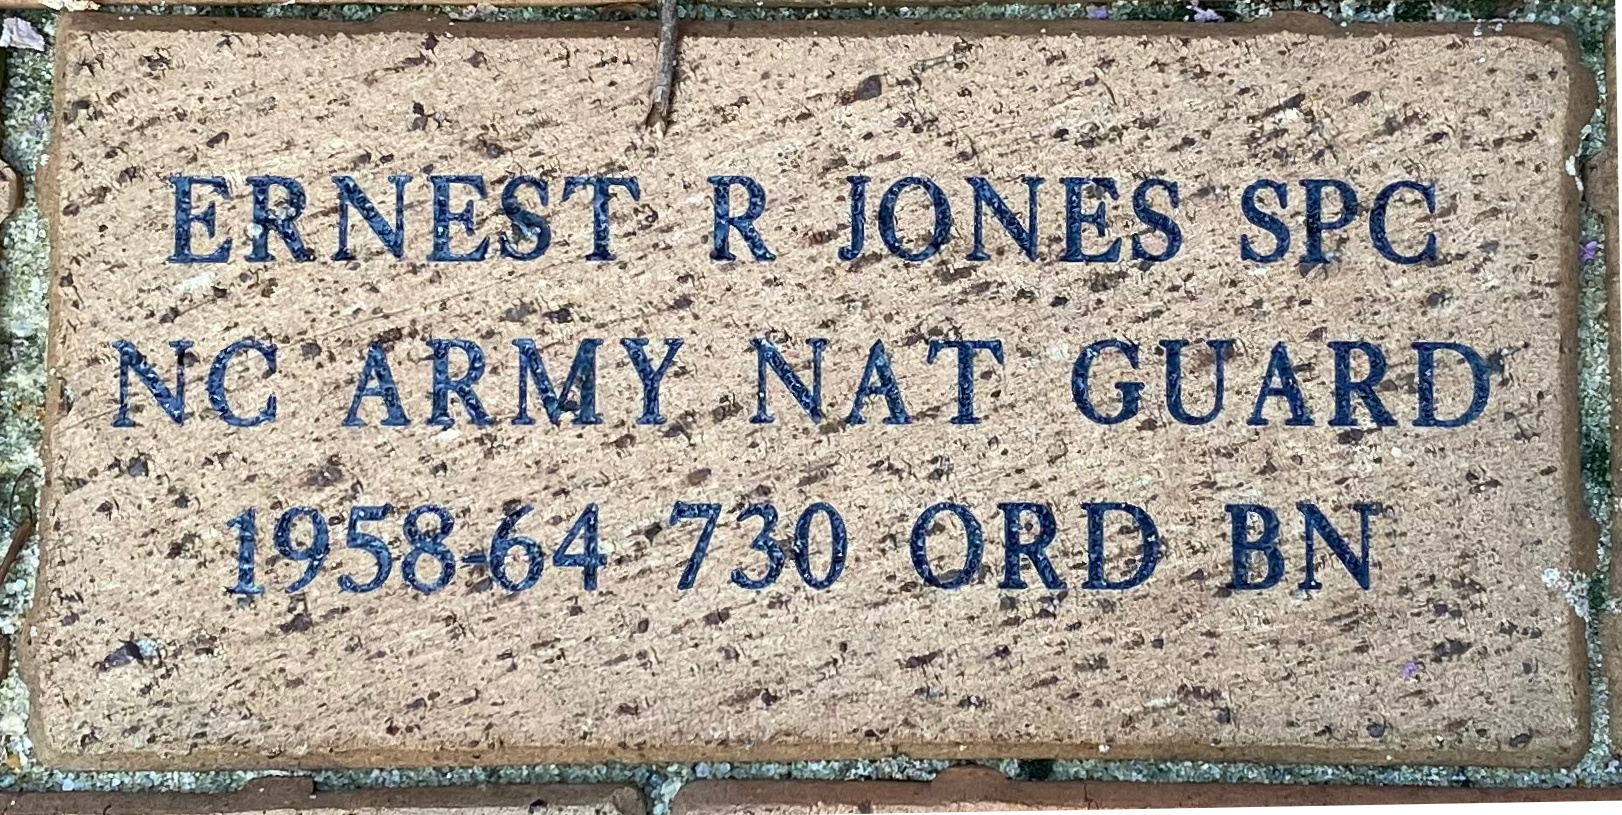 ERNEST R JONES SPC NC ARMY NAT GUARD 1958-64 730 ORD BN